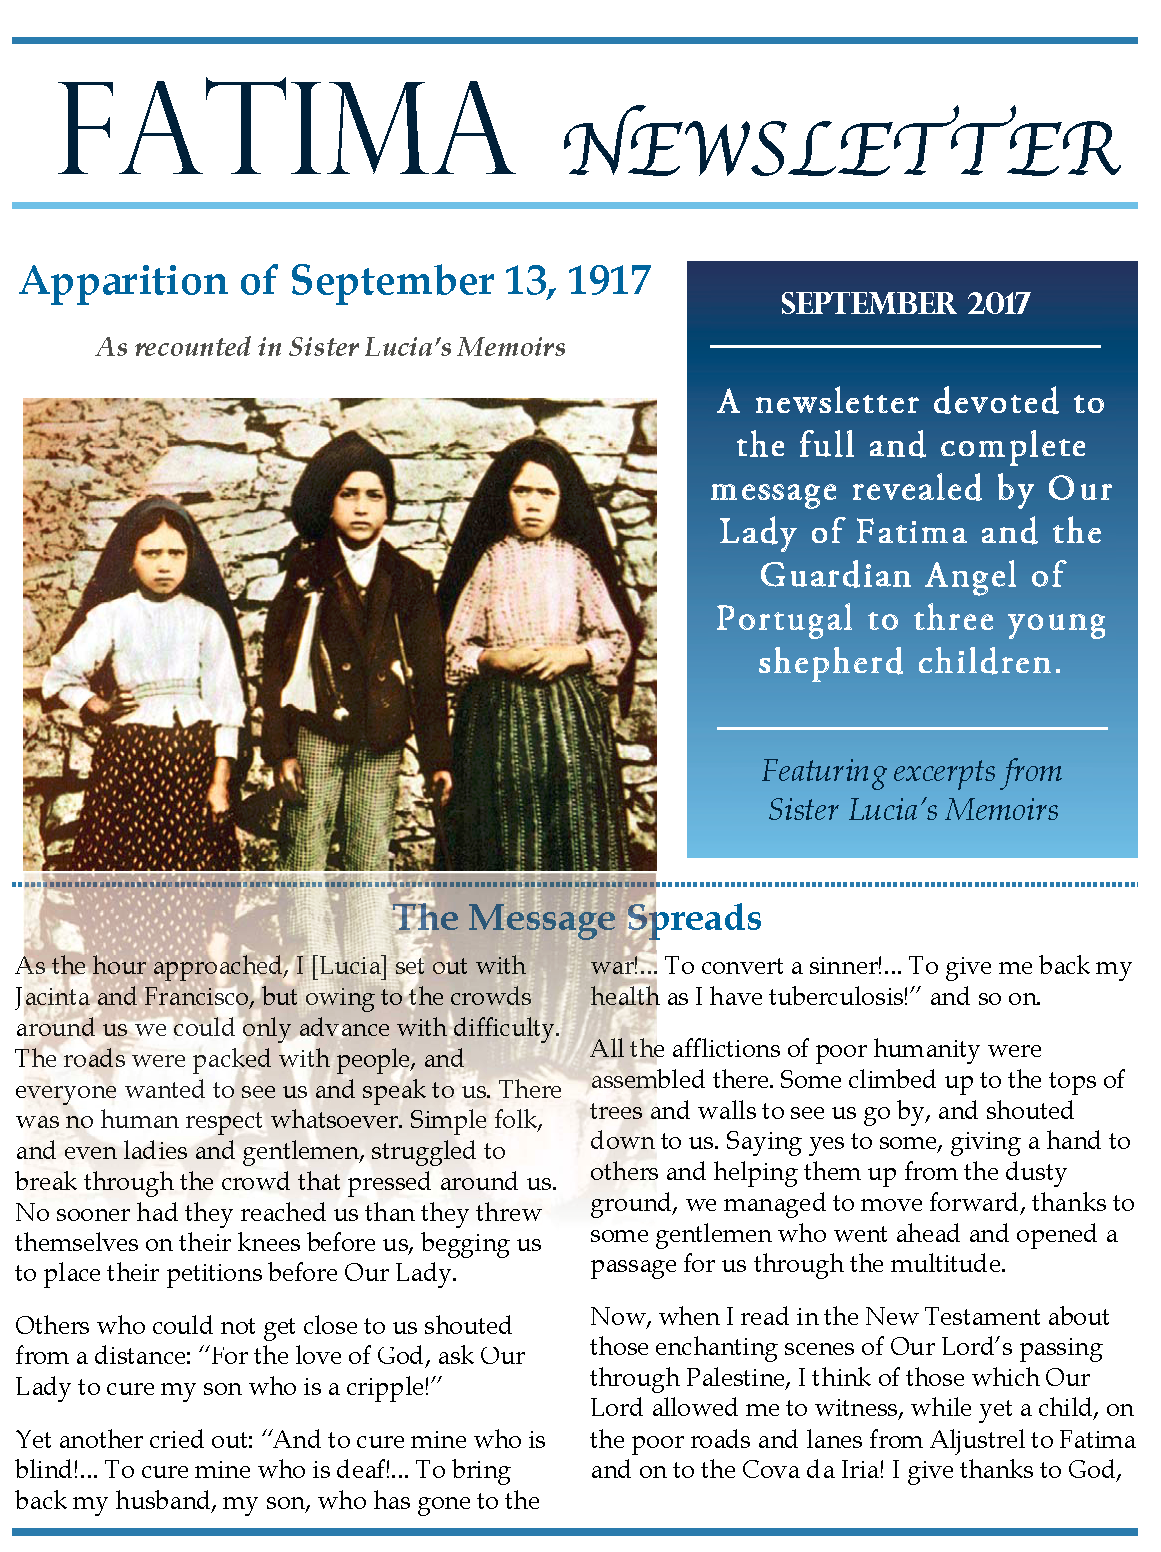 Fatima Newsletter_September 2017-2_Page_1